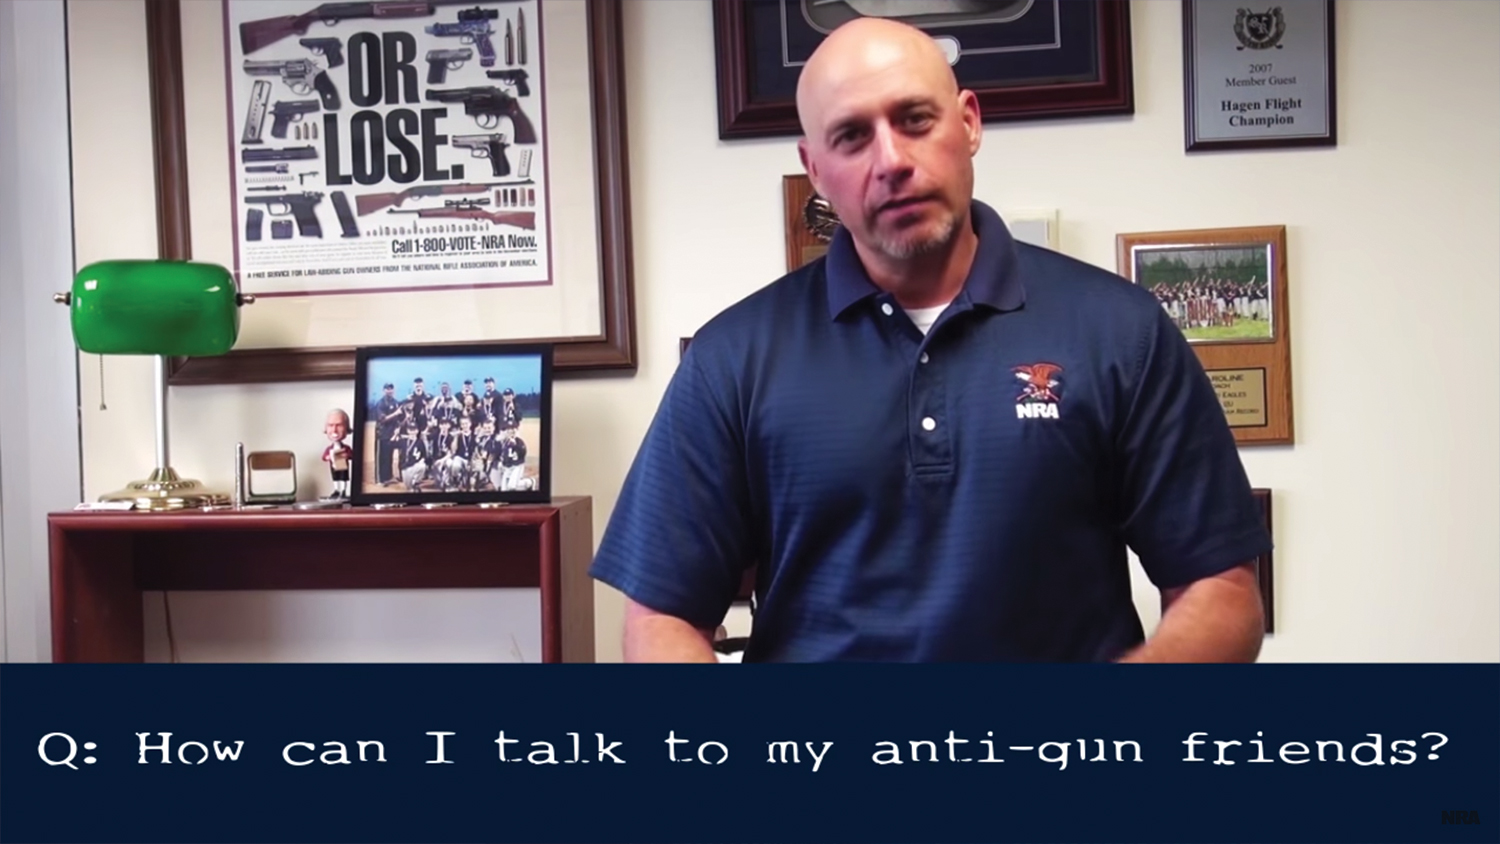 Ask Me Anything: How can I talk to my anti-gun friends?